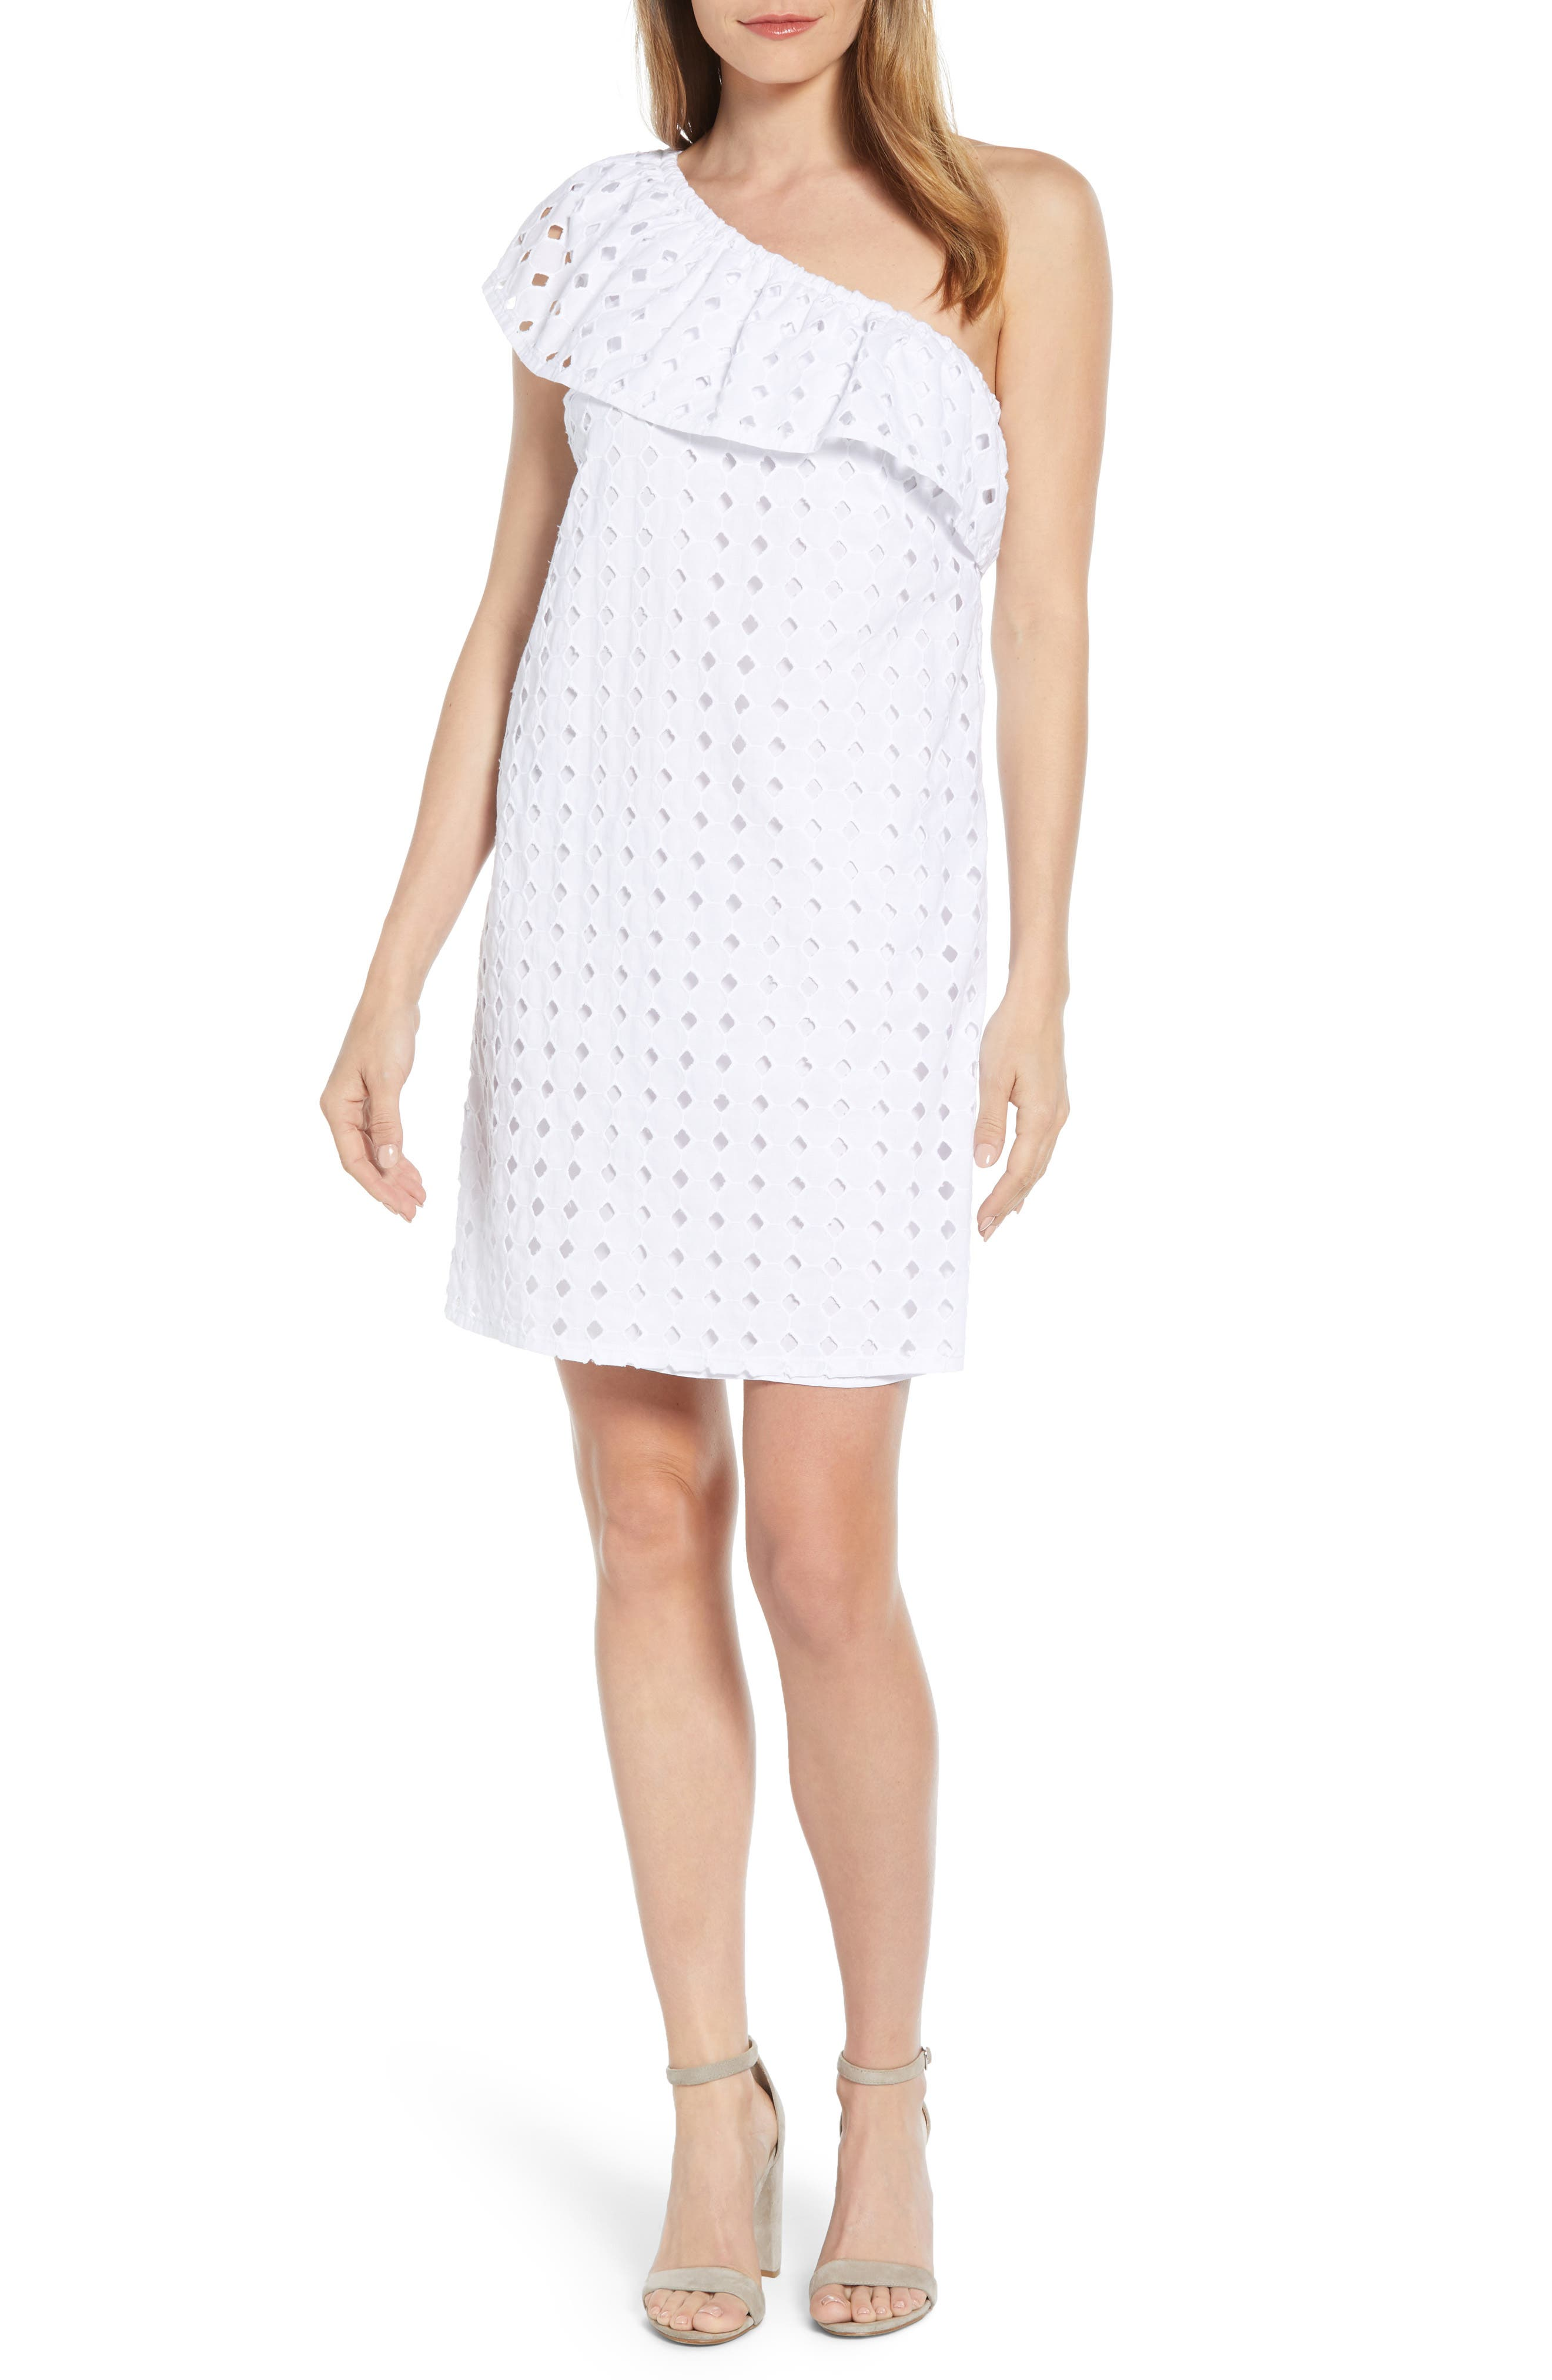 Petite Gibson X Living In Yellow Lily Eyelet One-Shoulder Dress, White (Regular & Petite) (Nordstrom Exclusive)